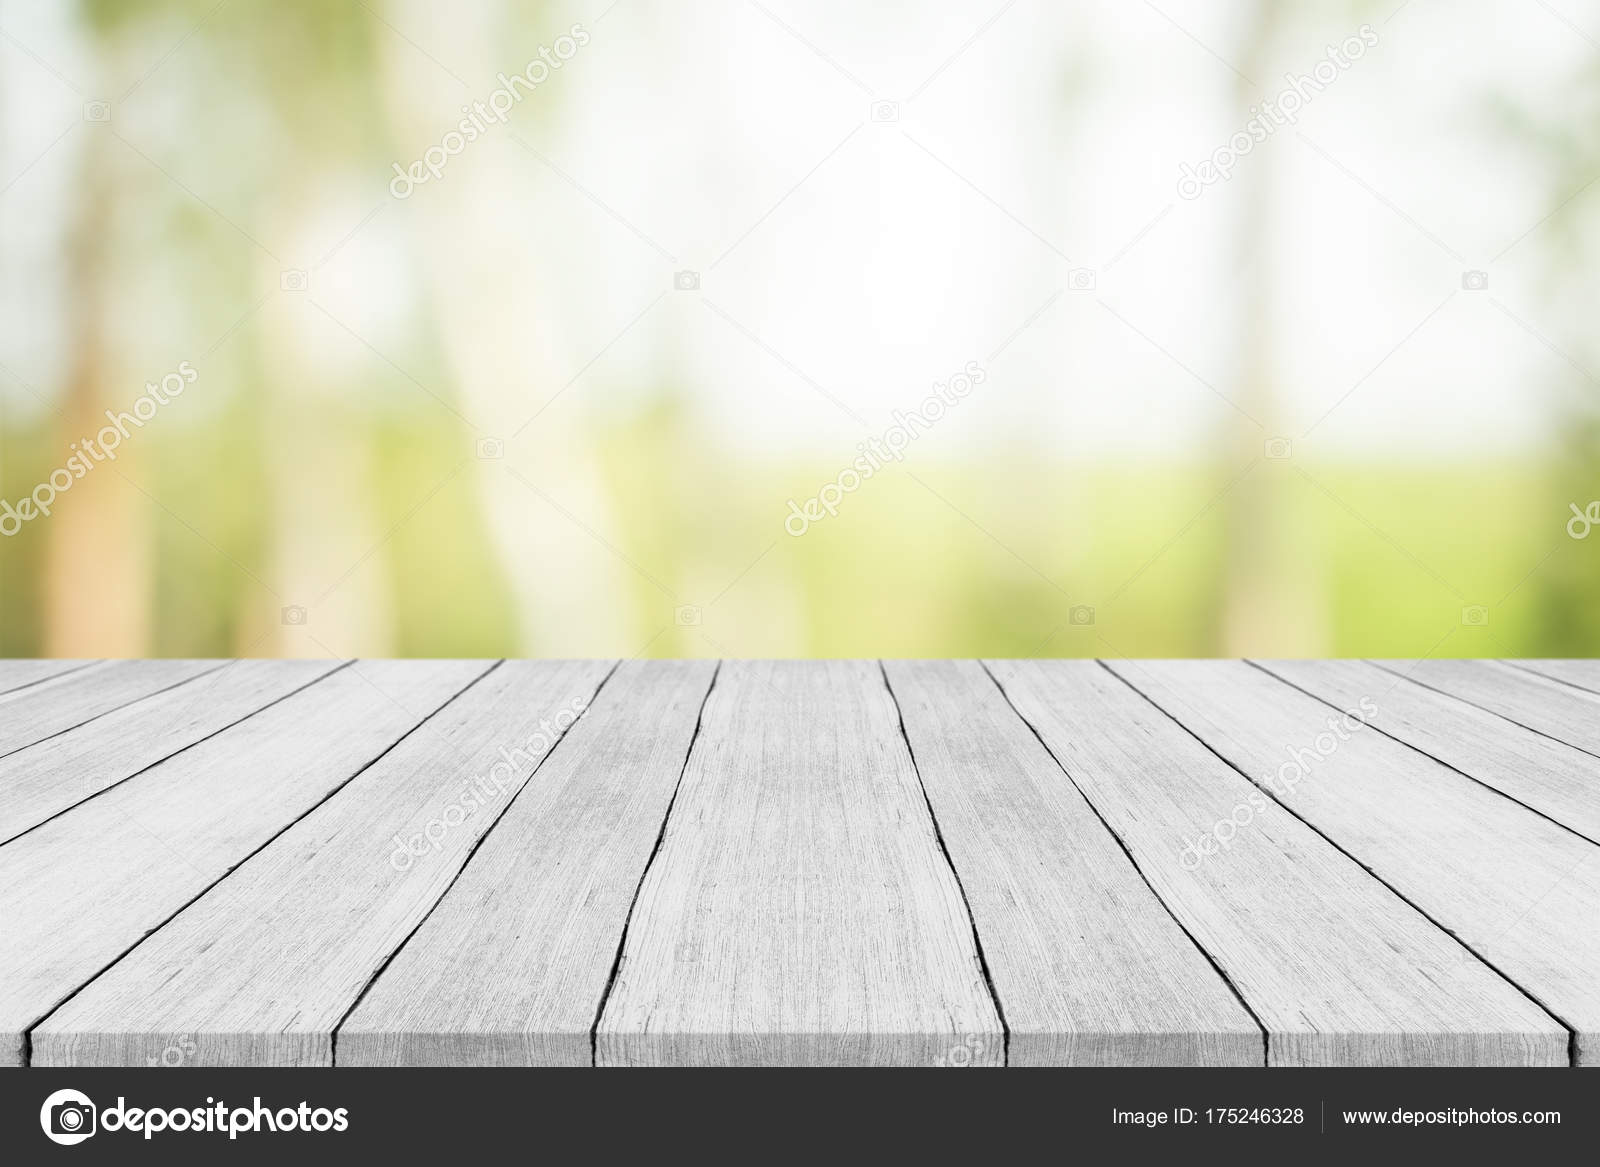 Picture of: Empty White Wood Table Top On Nature Green Blurred Background Stock Photo C Sorrapongs 175246328